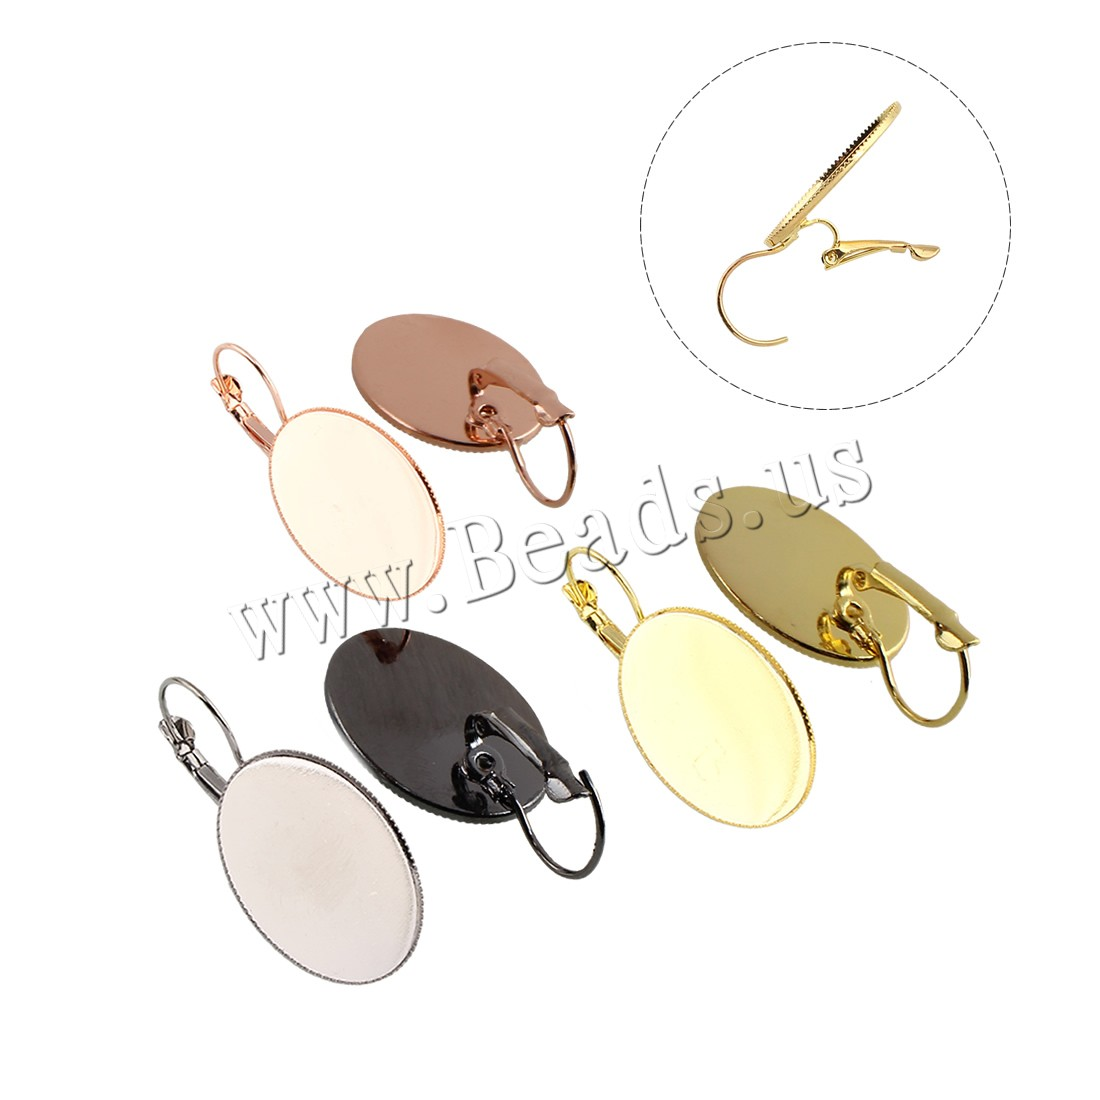 Buy Brass Lever Back Earring Component Oval plated colors choice nickel lead & cadmium free 19x36x13mm Inner Diameter:Approx 18x25mm 20PCs/Bag Sold Bag